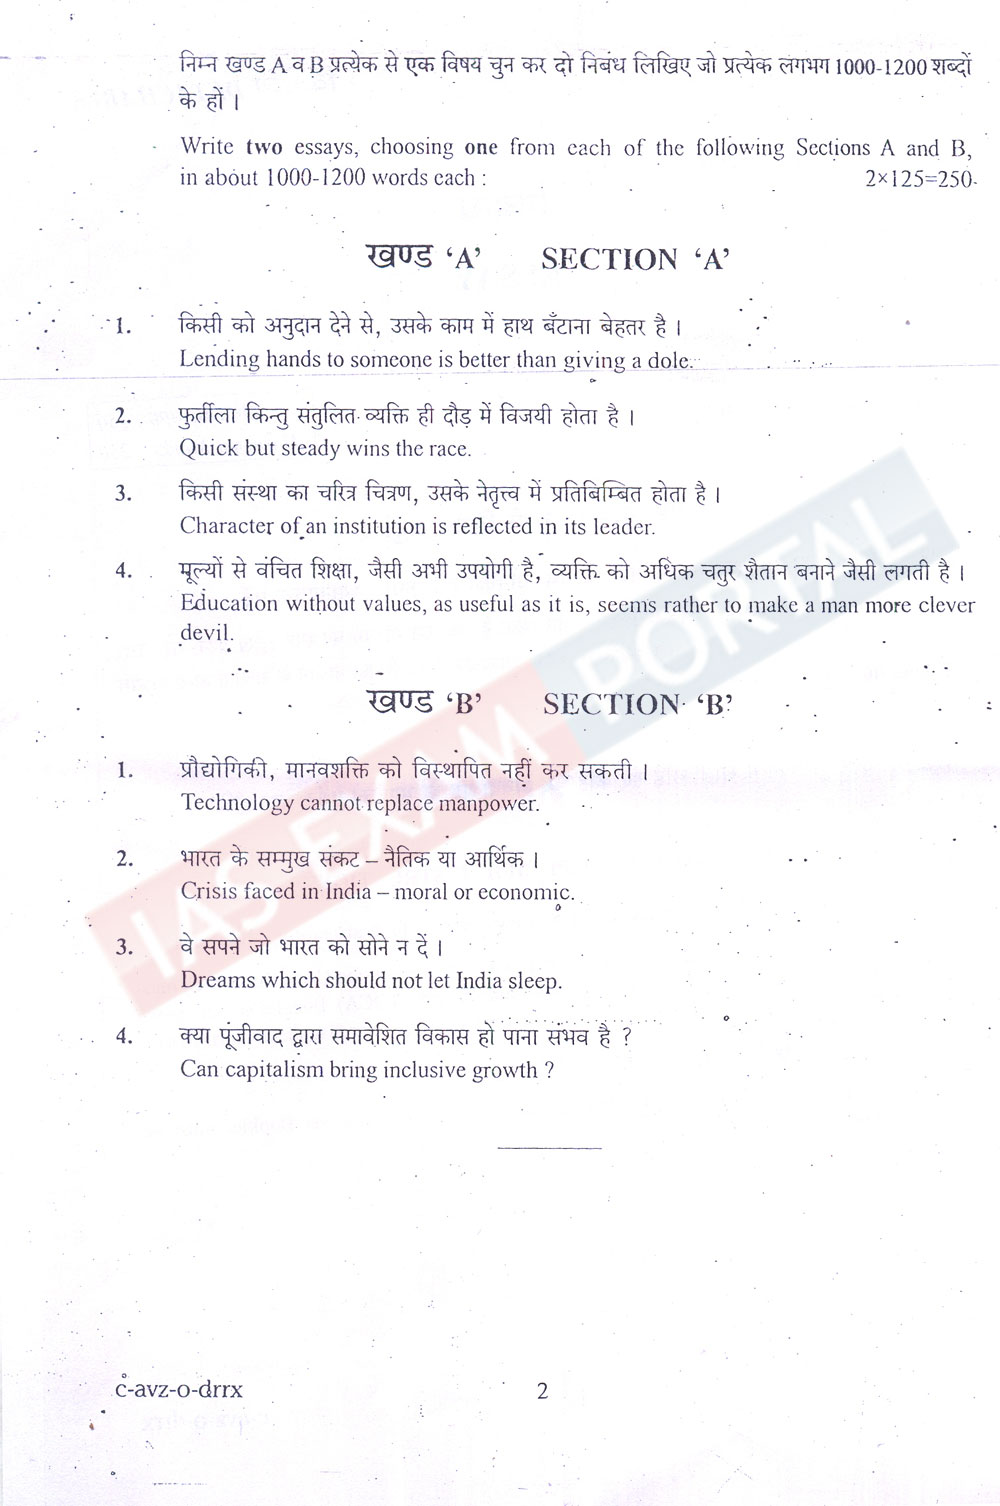 cow essay ias exam 2016